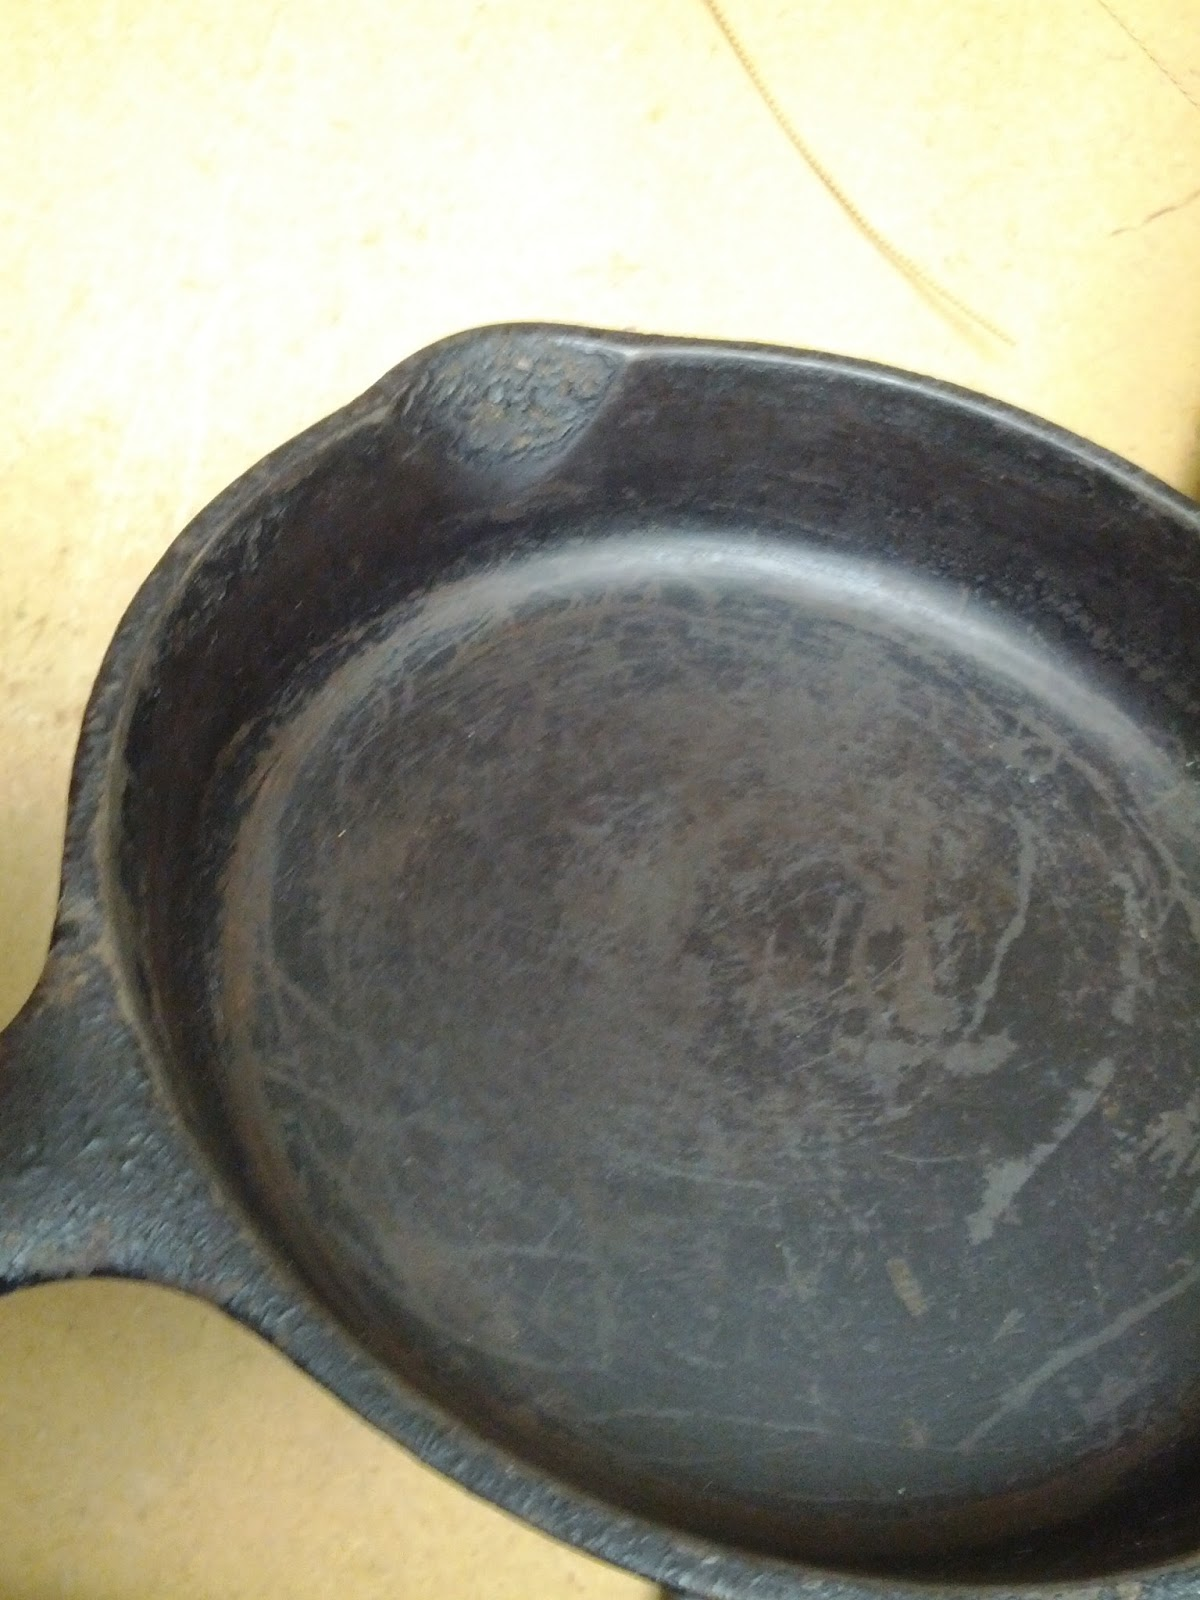 Curt Corwin's Blog: How to clean cast iron cookware with